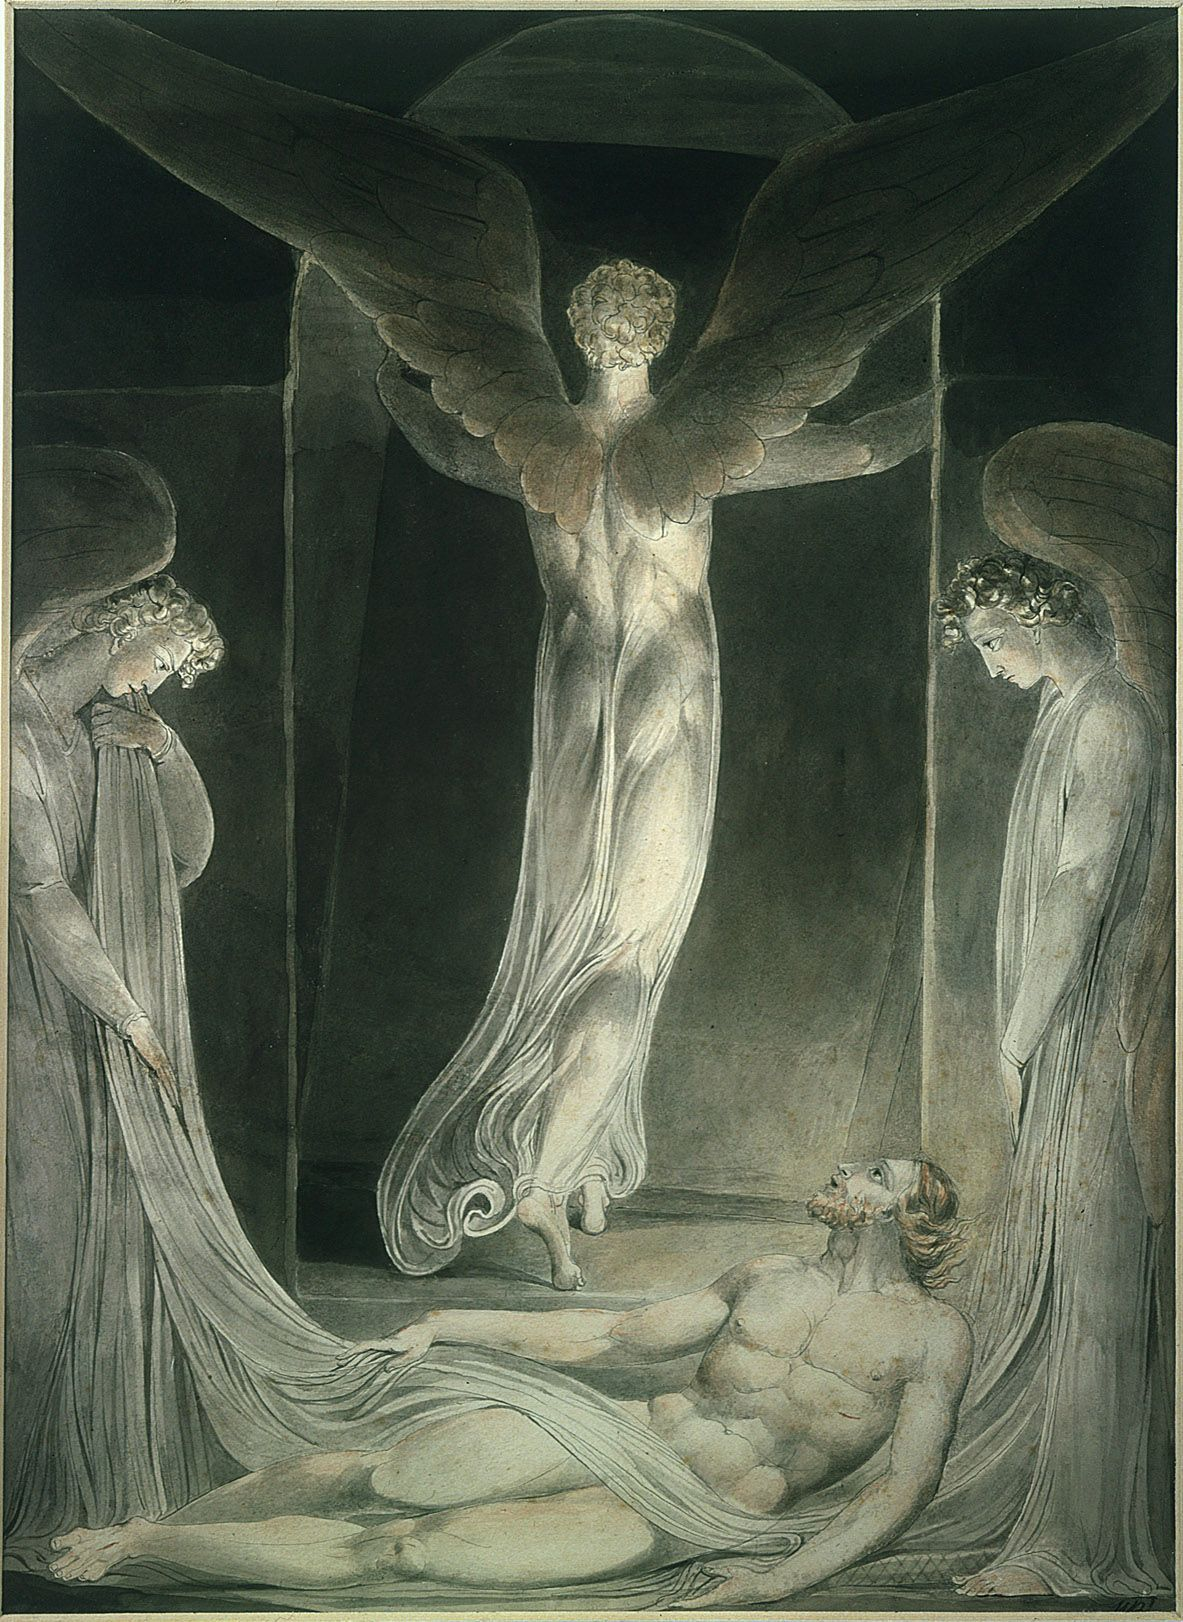 william blake ldquo the angel rolling the stone away rdquo c  william blake ldquothe angel rolling the stone away rdquo c